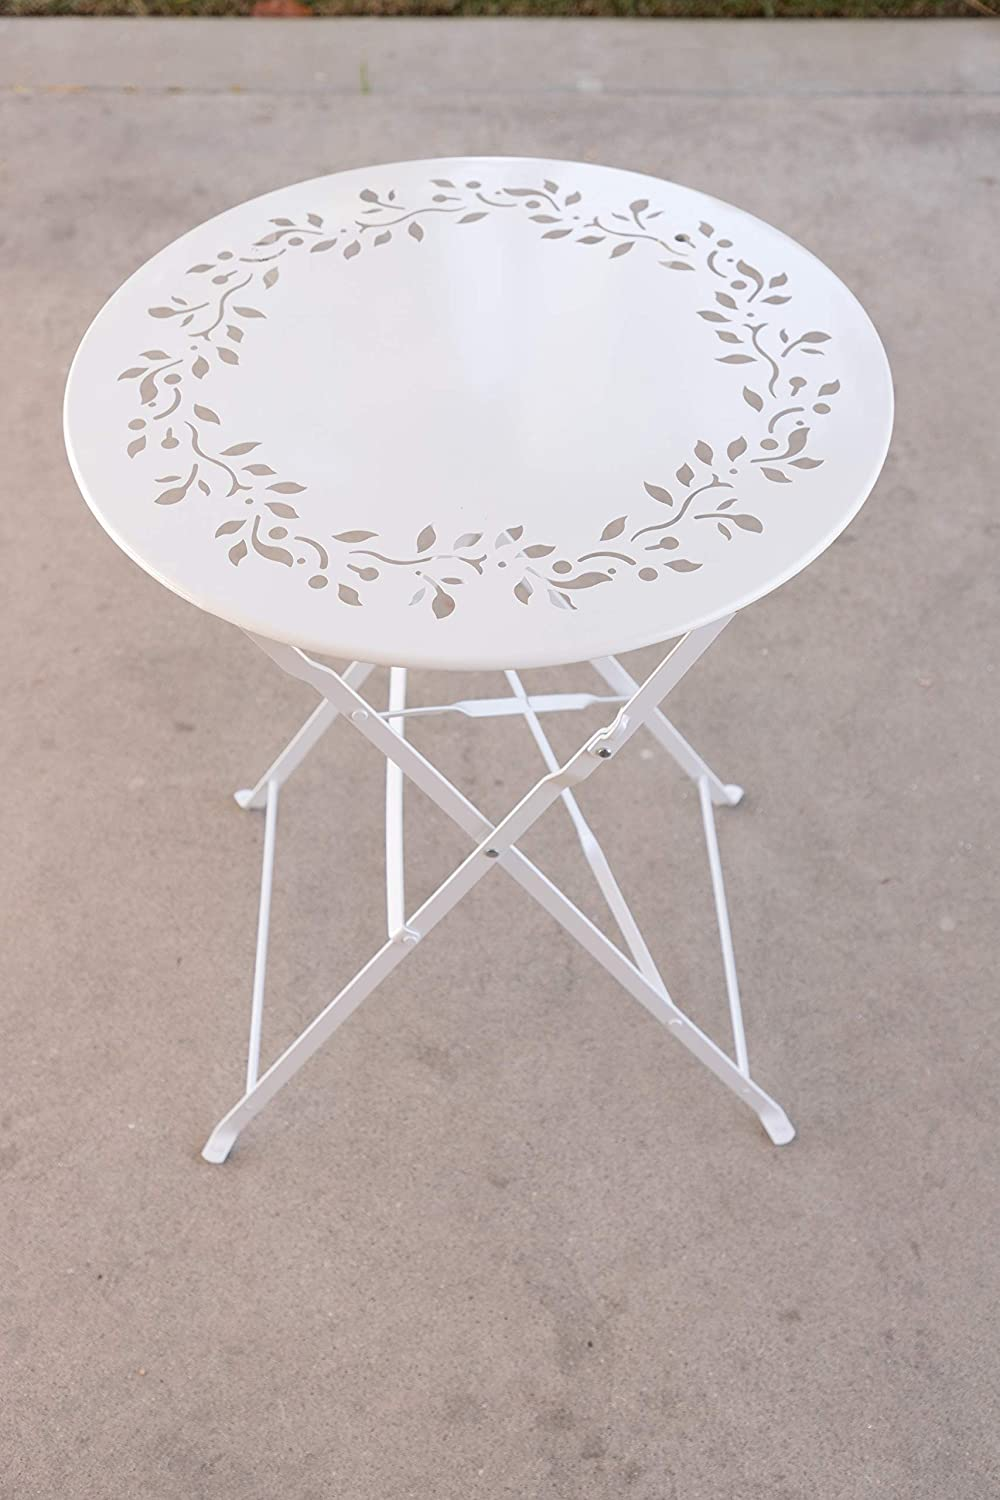 Alpine Corporation 3-Piece Floral Metal Bistro Set – Outdoor Conversation Set for Patio, Yard, Garden – White